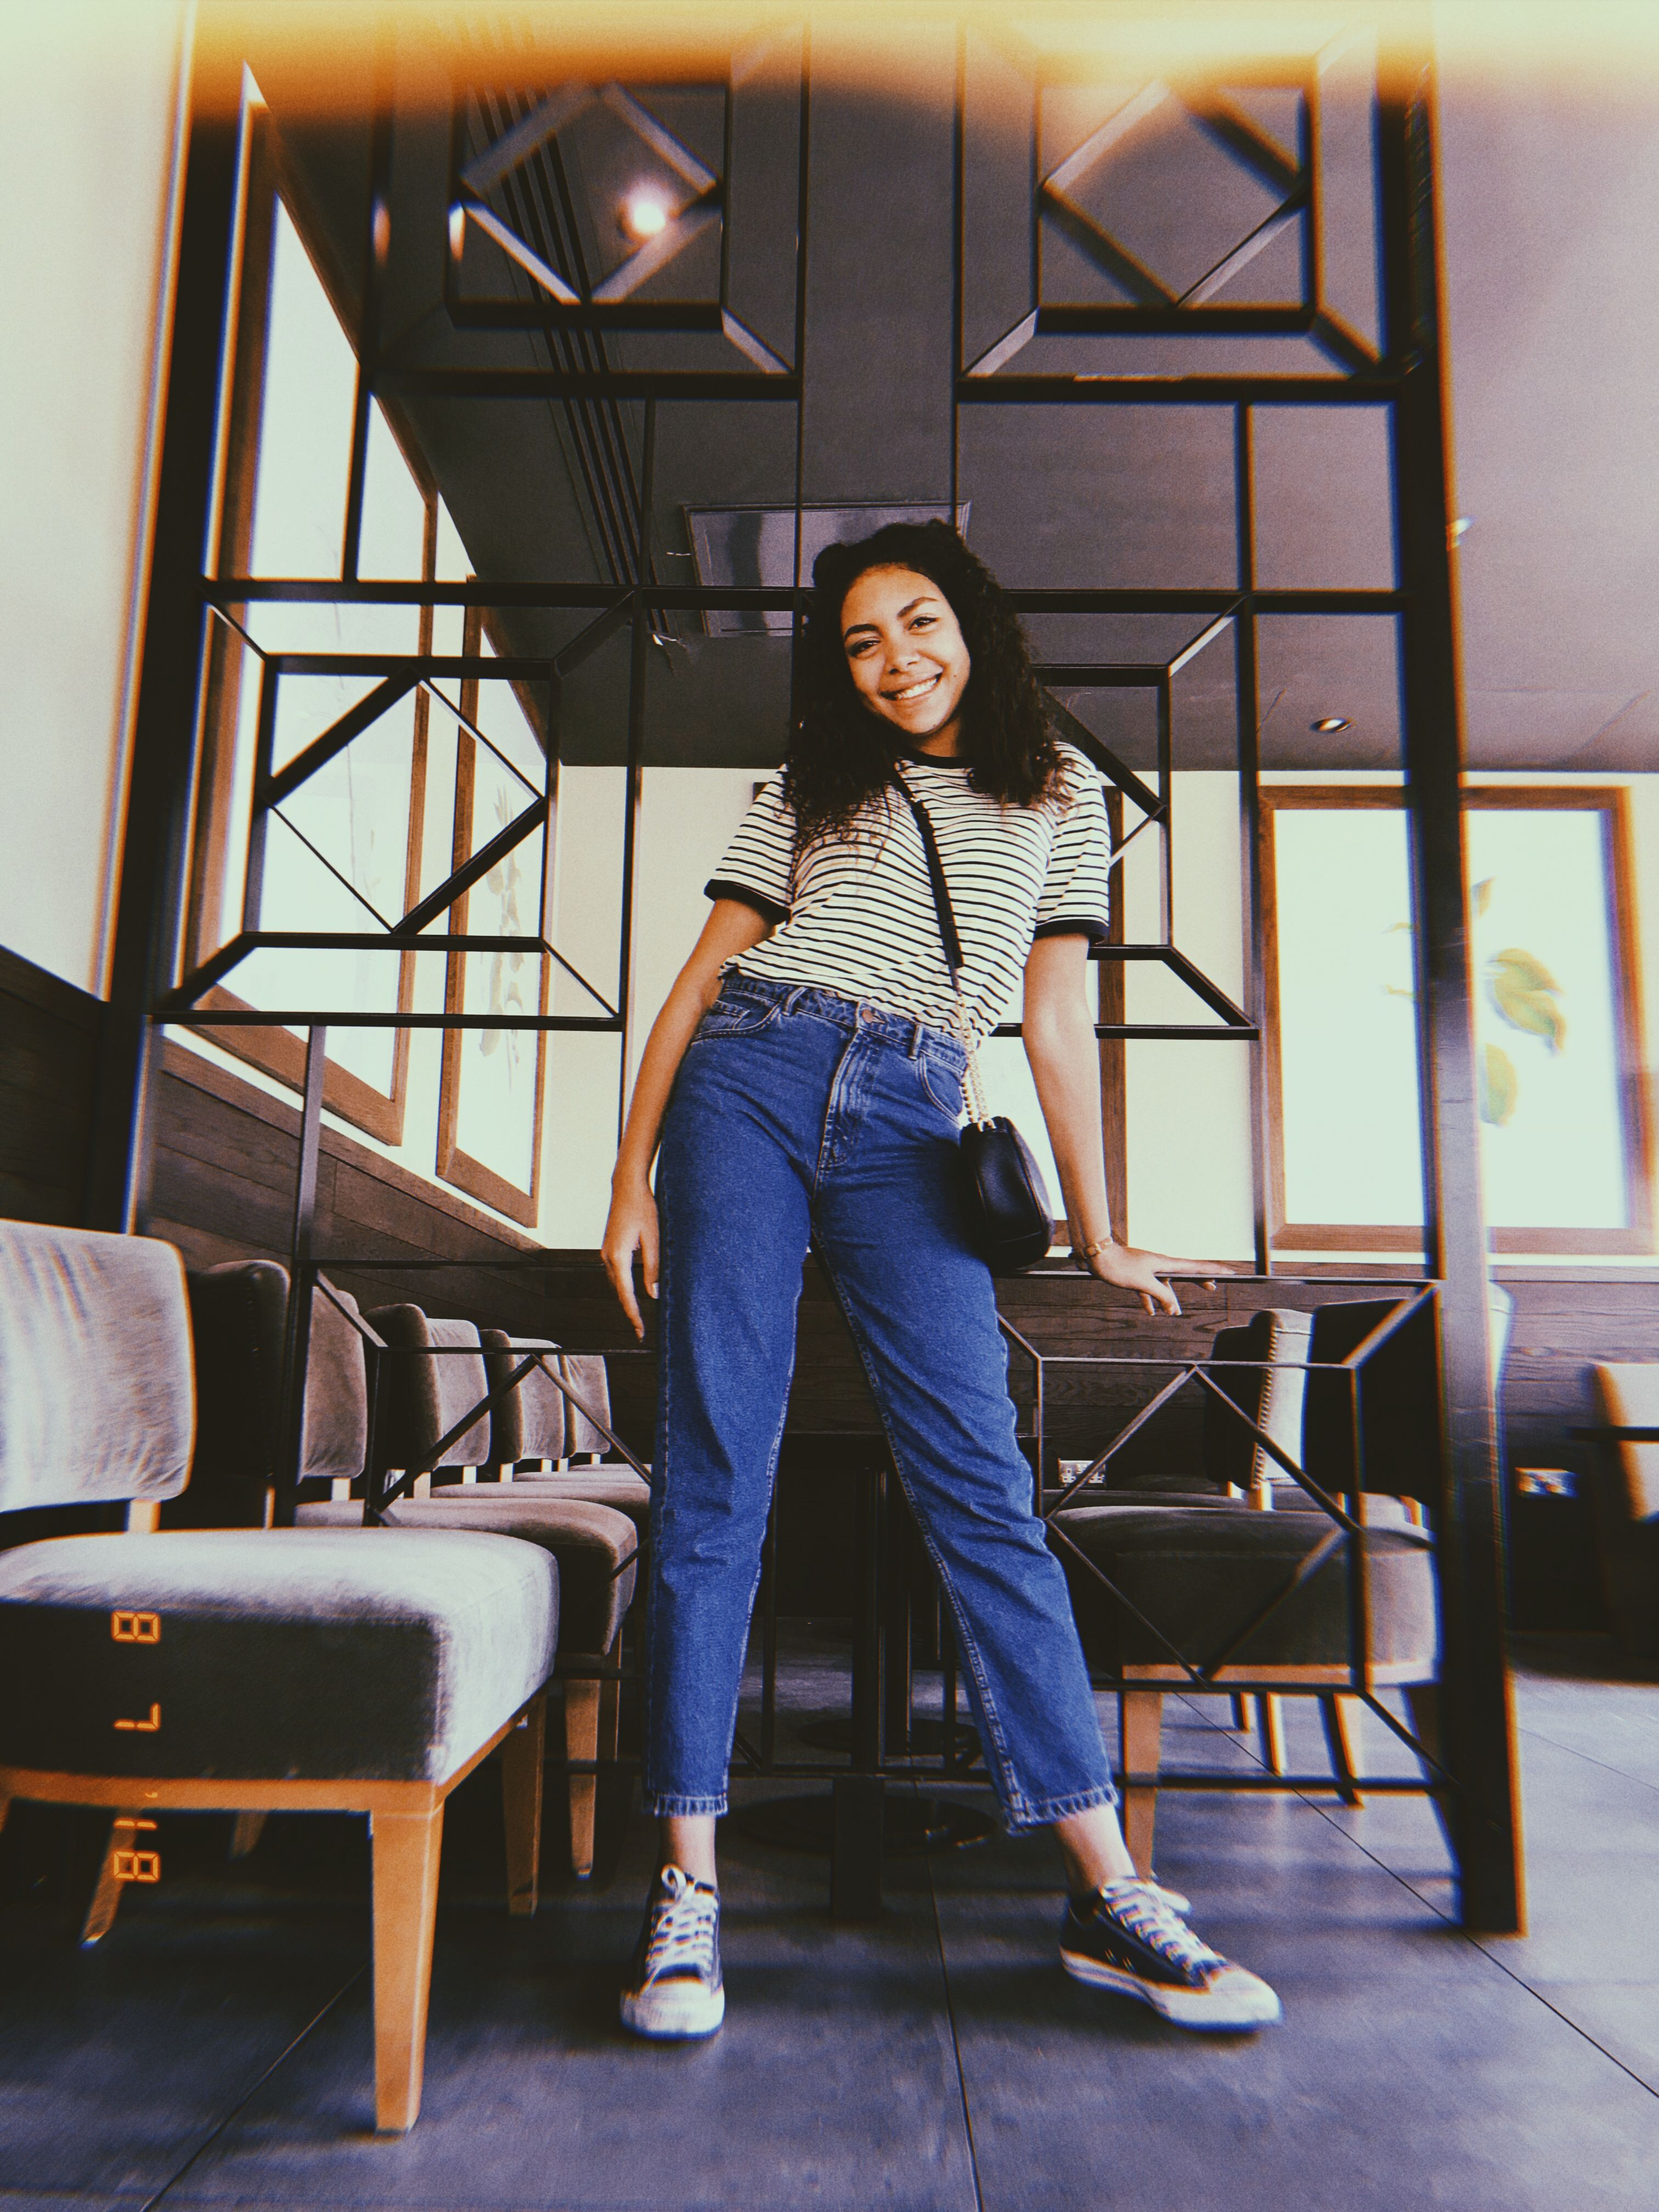 Scrunchie, mom jeans, black converse all star | Outfit